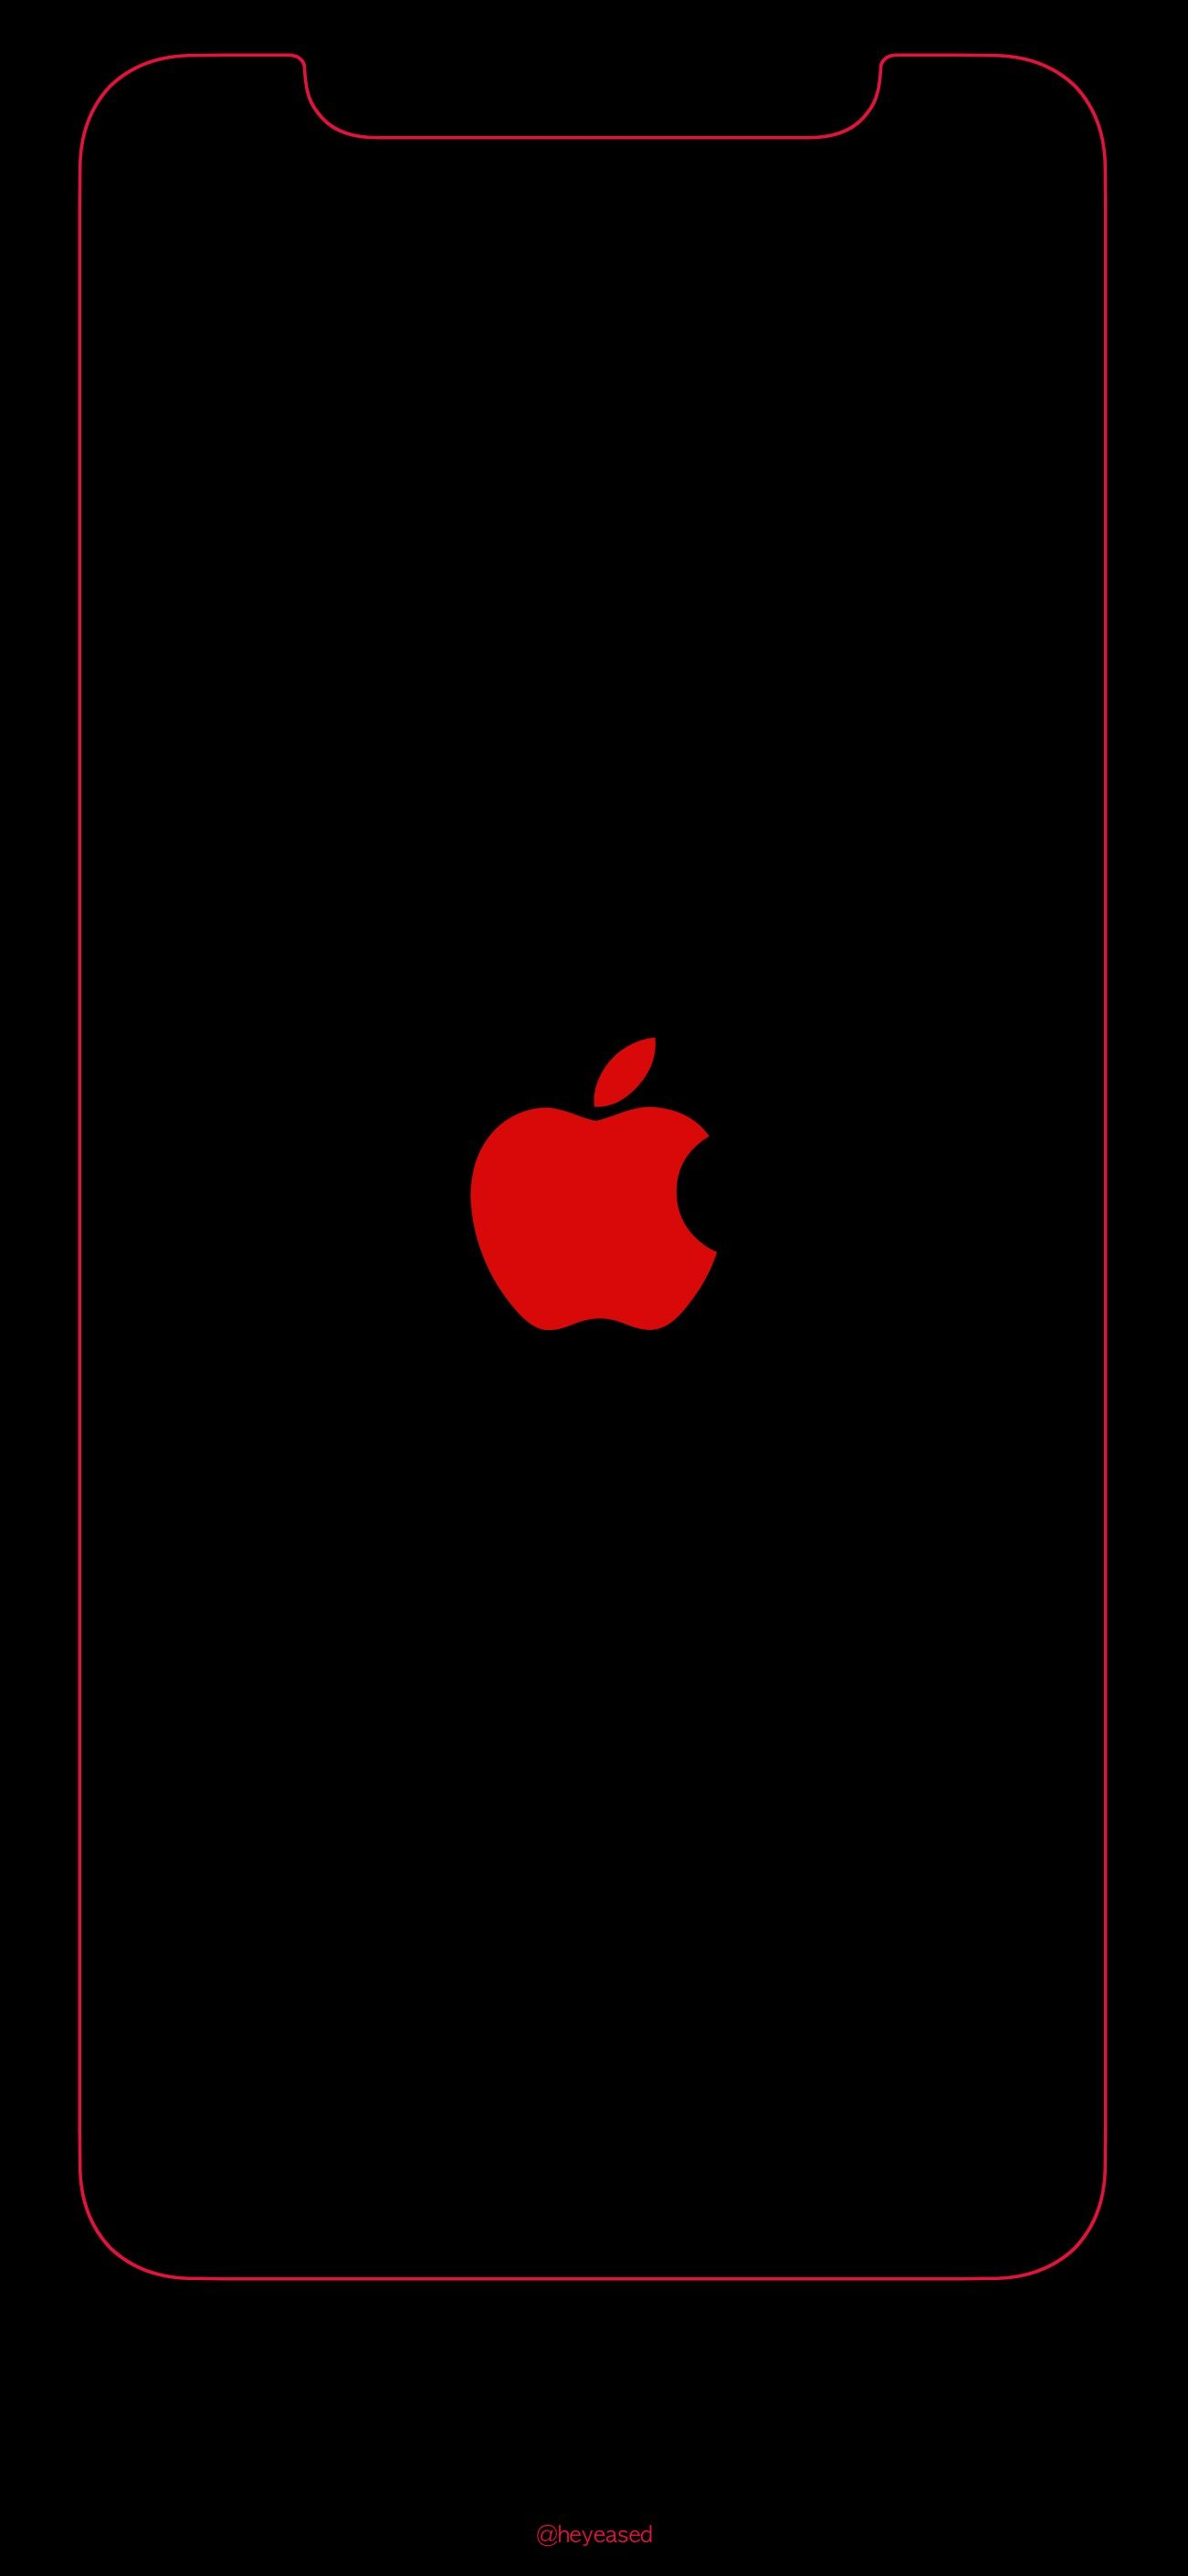 Apple iPhone X HD Wallpapers on WallpaperDog